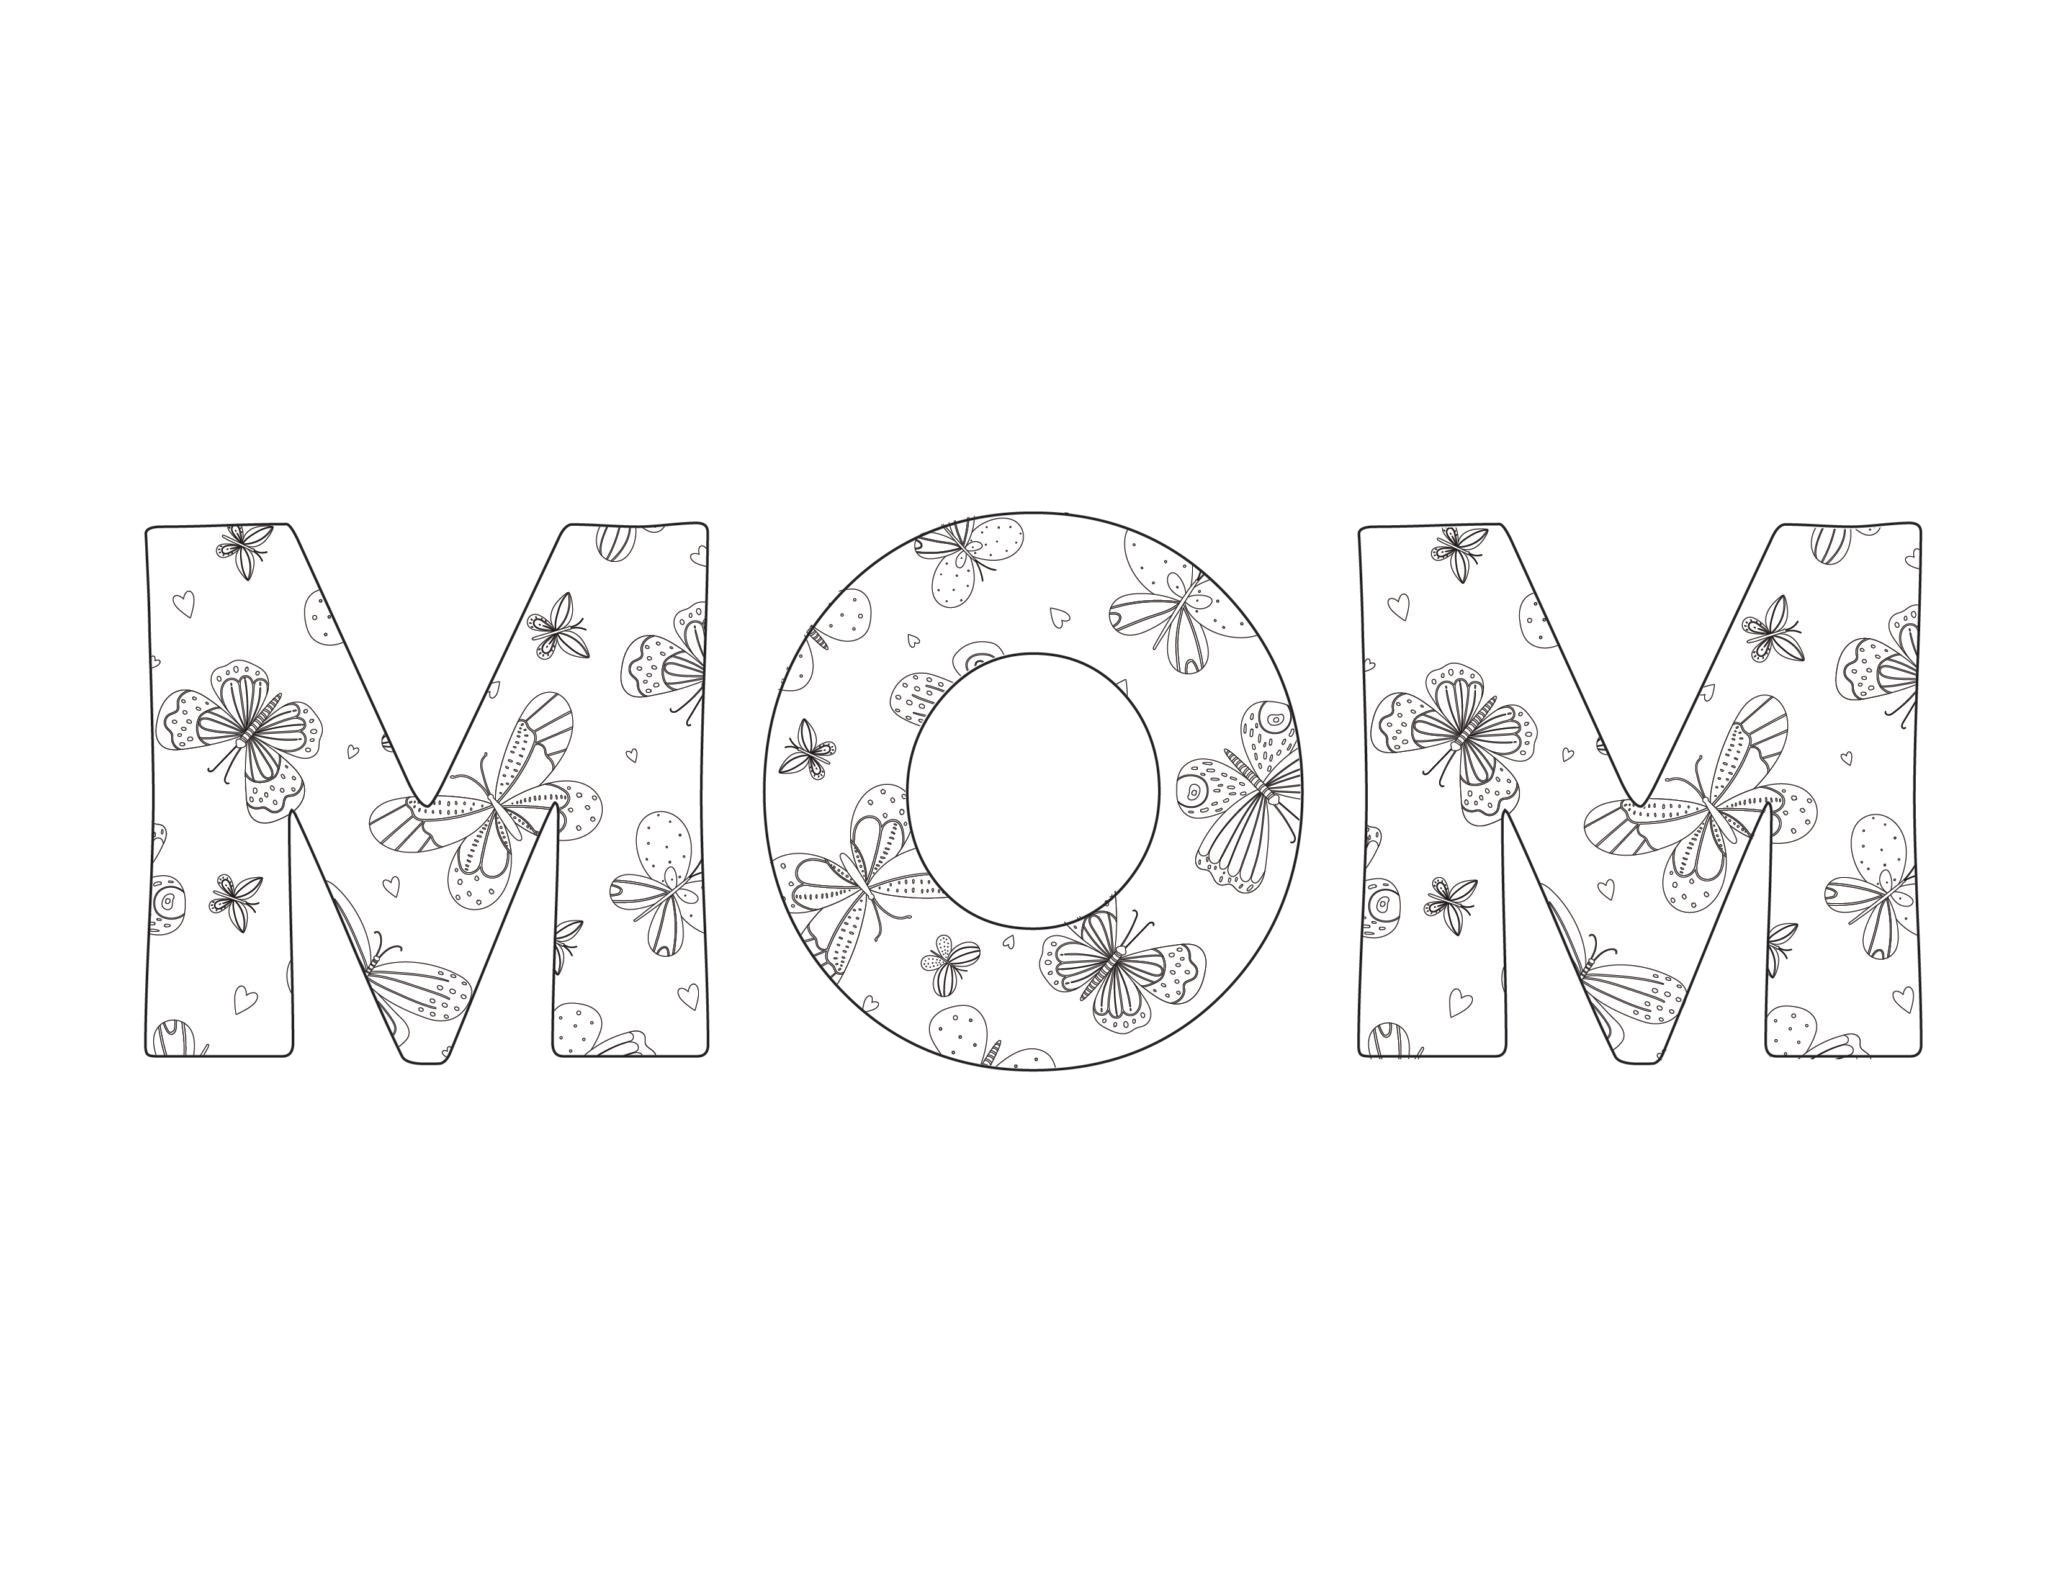 The Word Mom In Bubble Letters 3 Free Printables Laptrinhx News